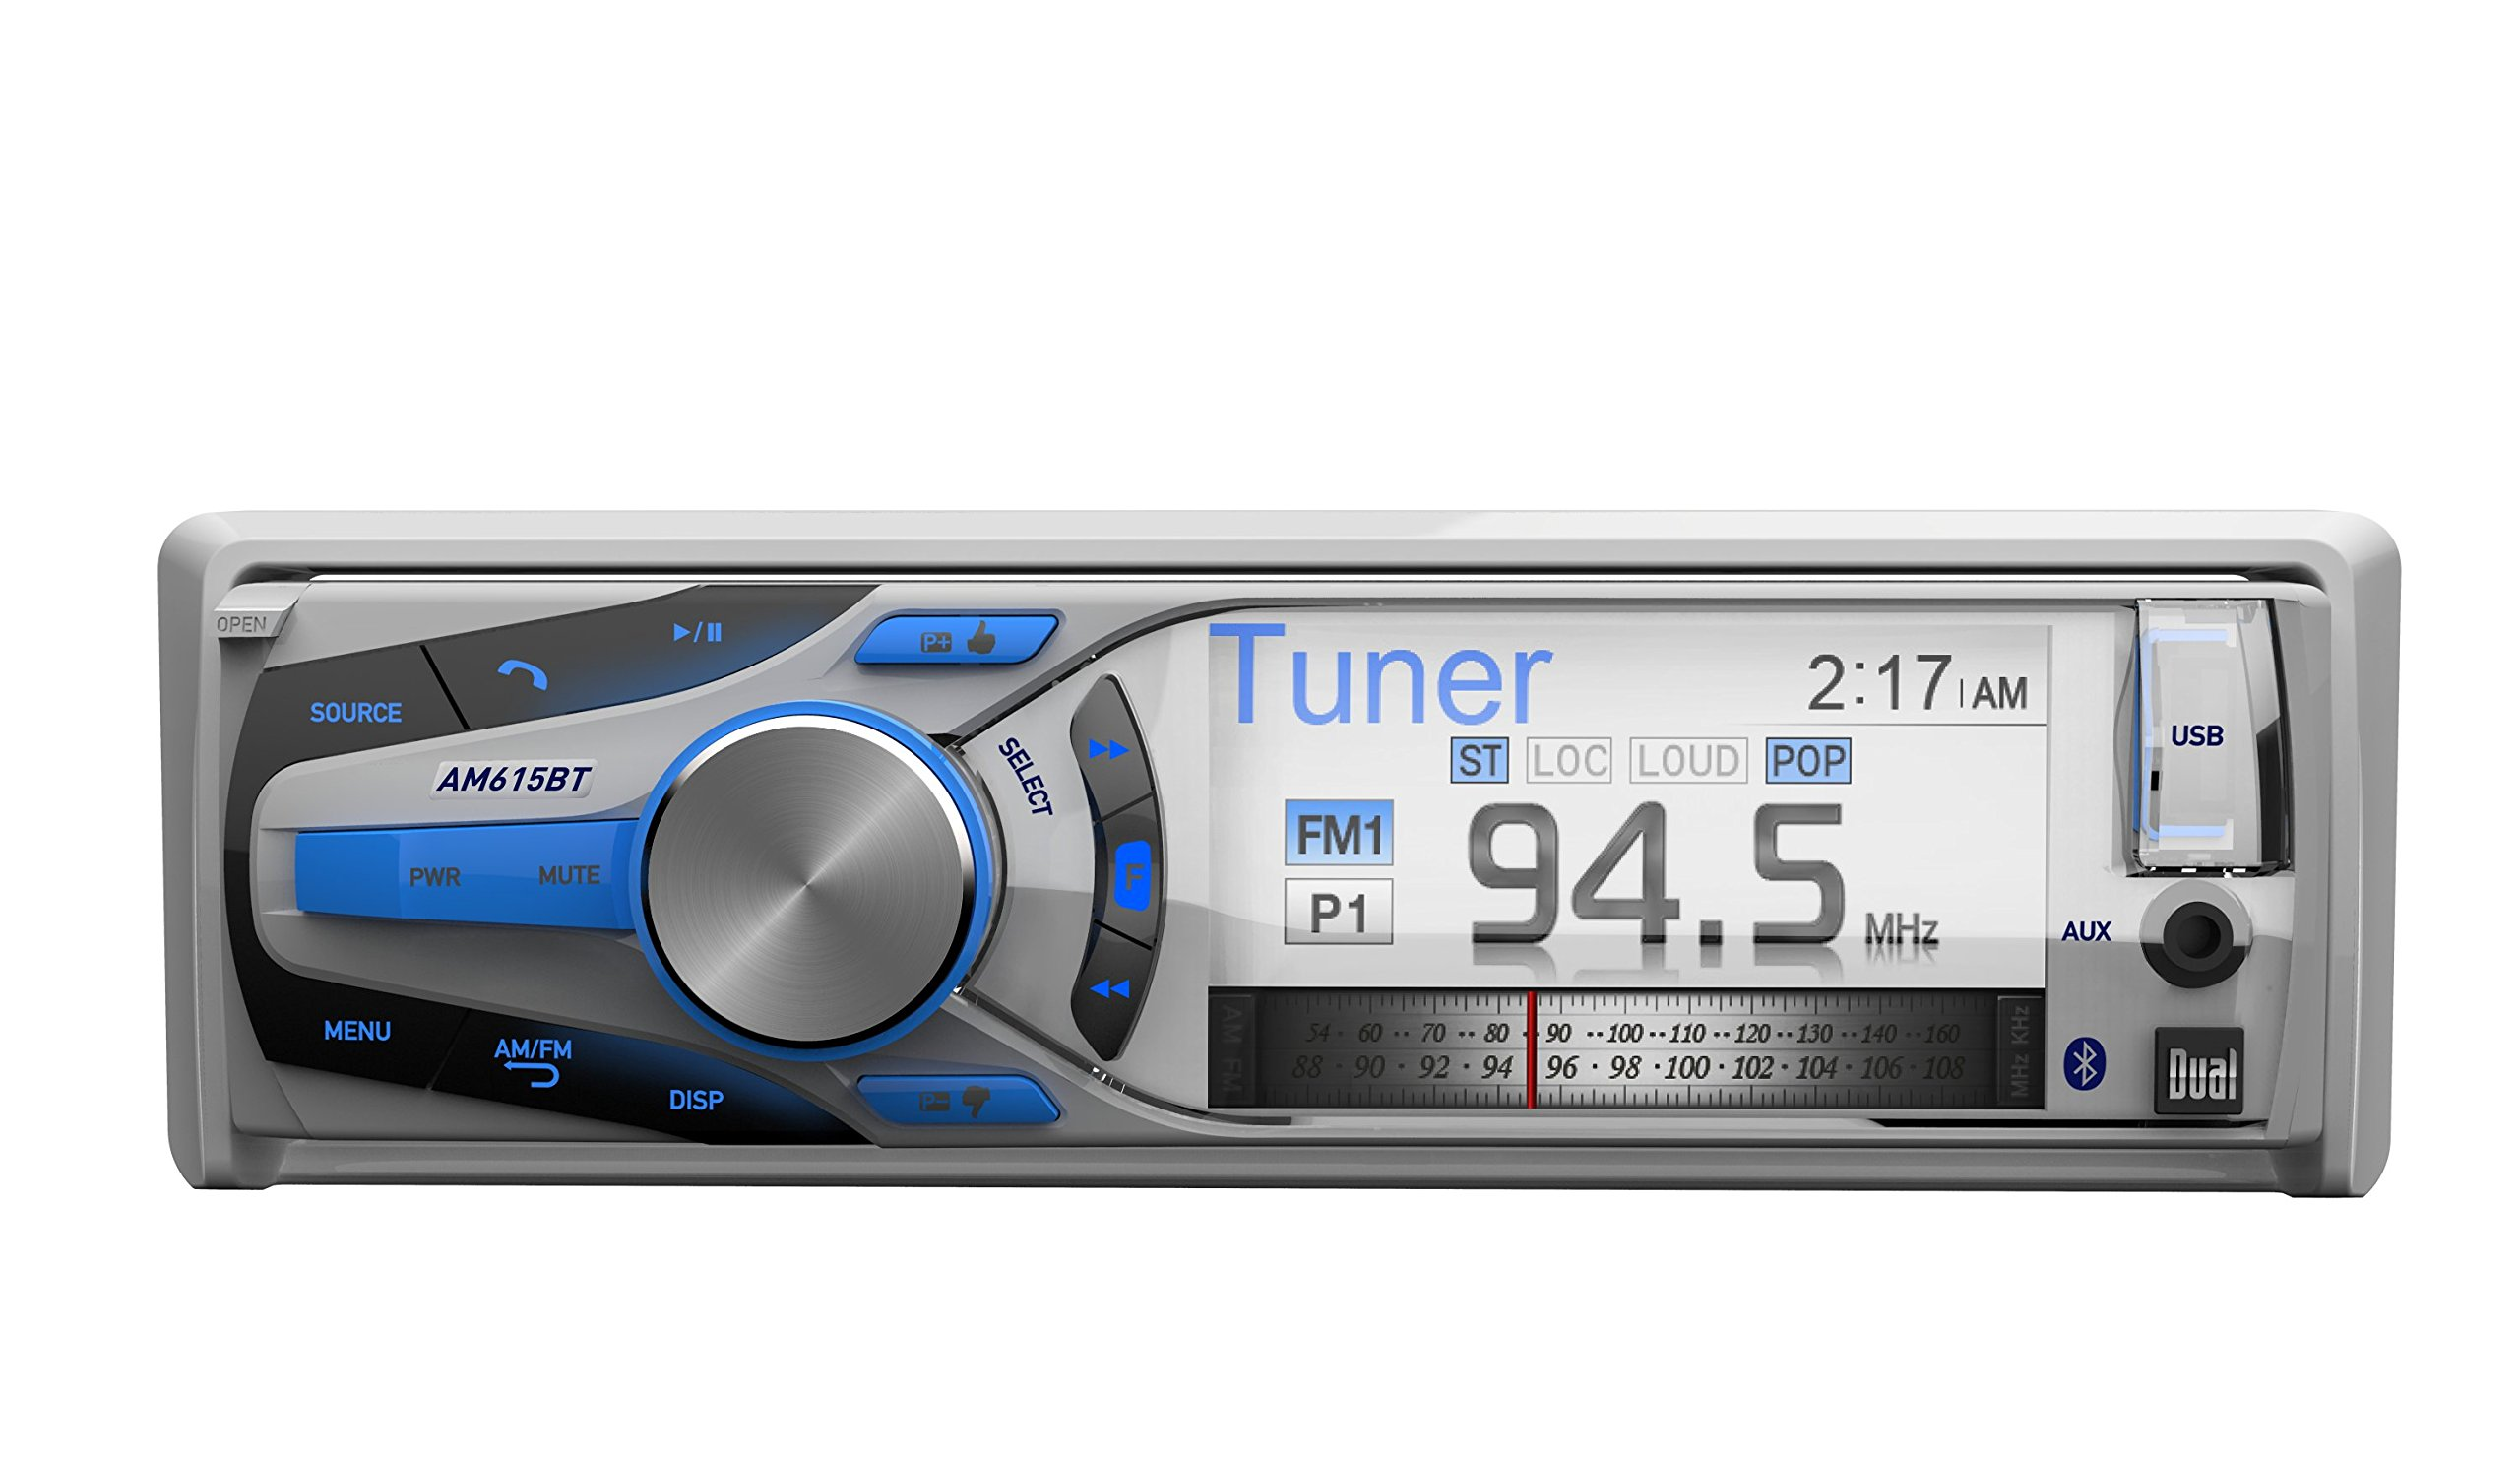 Dual Electronics AM615BT 3 inch Full Color Multi-Line Detachable Single DIN Marine Stereo with Built-In Bluetooth & MP3/WMA Player